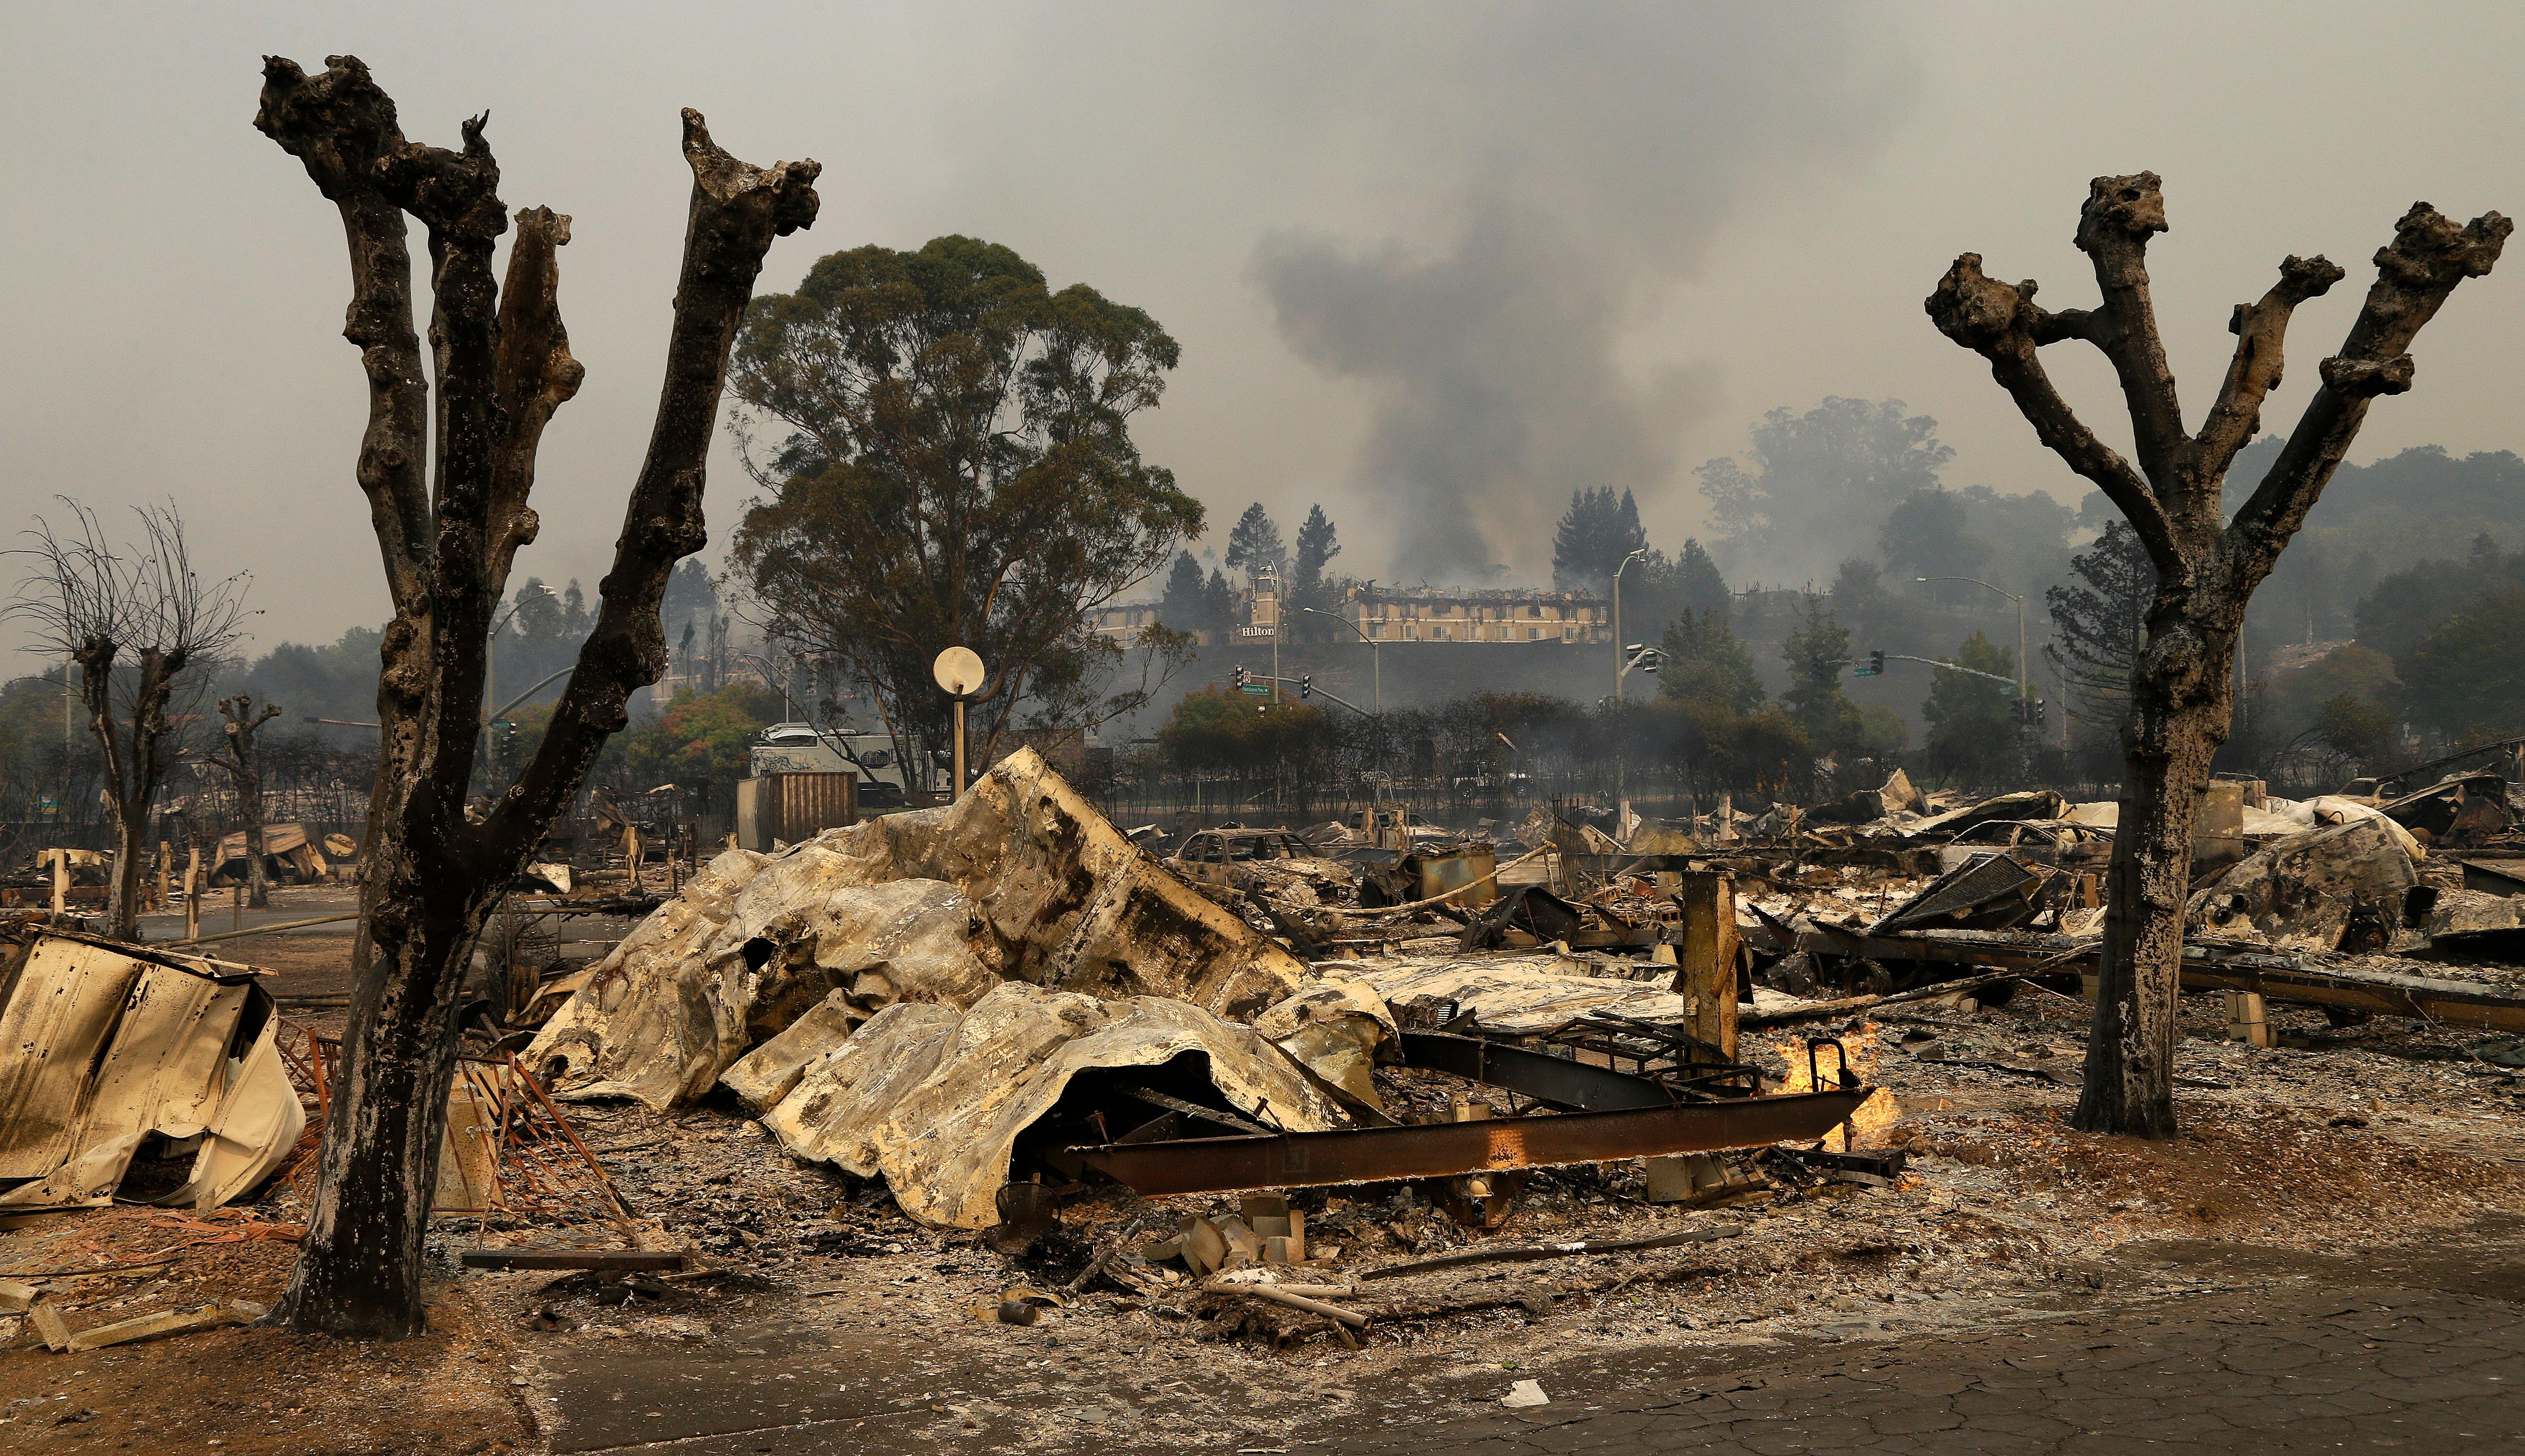 Remains sit at the Journey's End mobile home park on Monday, Oct. 9, 2017, in Santa Rosa, Calif. Wildfires whipped by powerful winds swept through Northern California, sending residents on a headlong flight to safety through smoke and flames as homes burned. (AP Photo/Ben Margot)